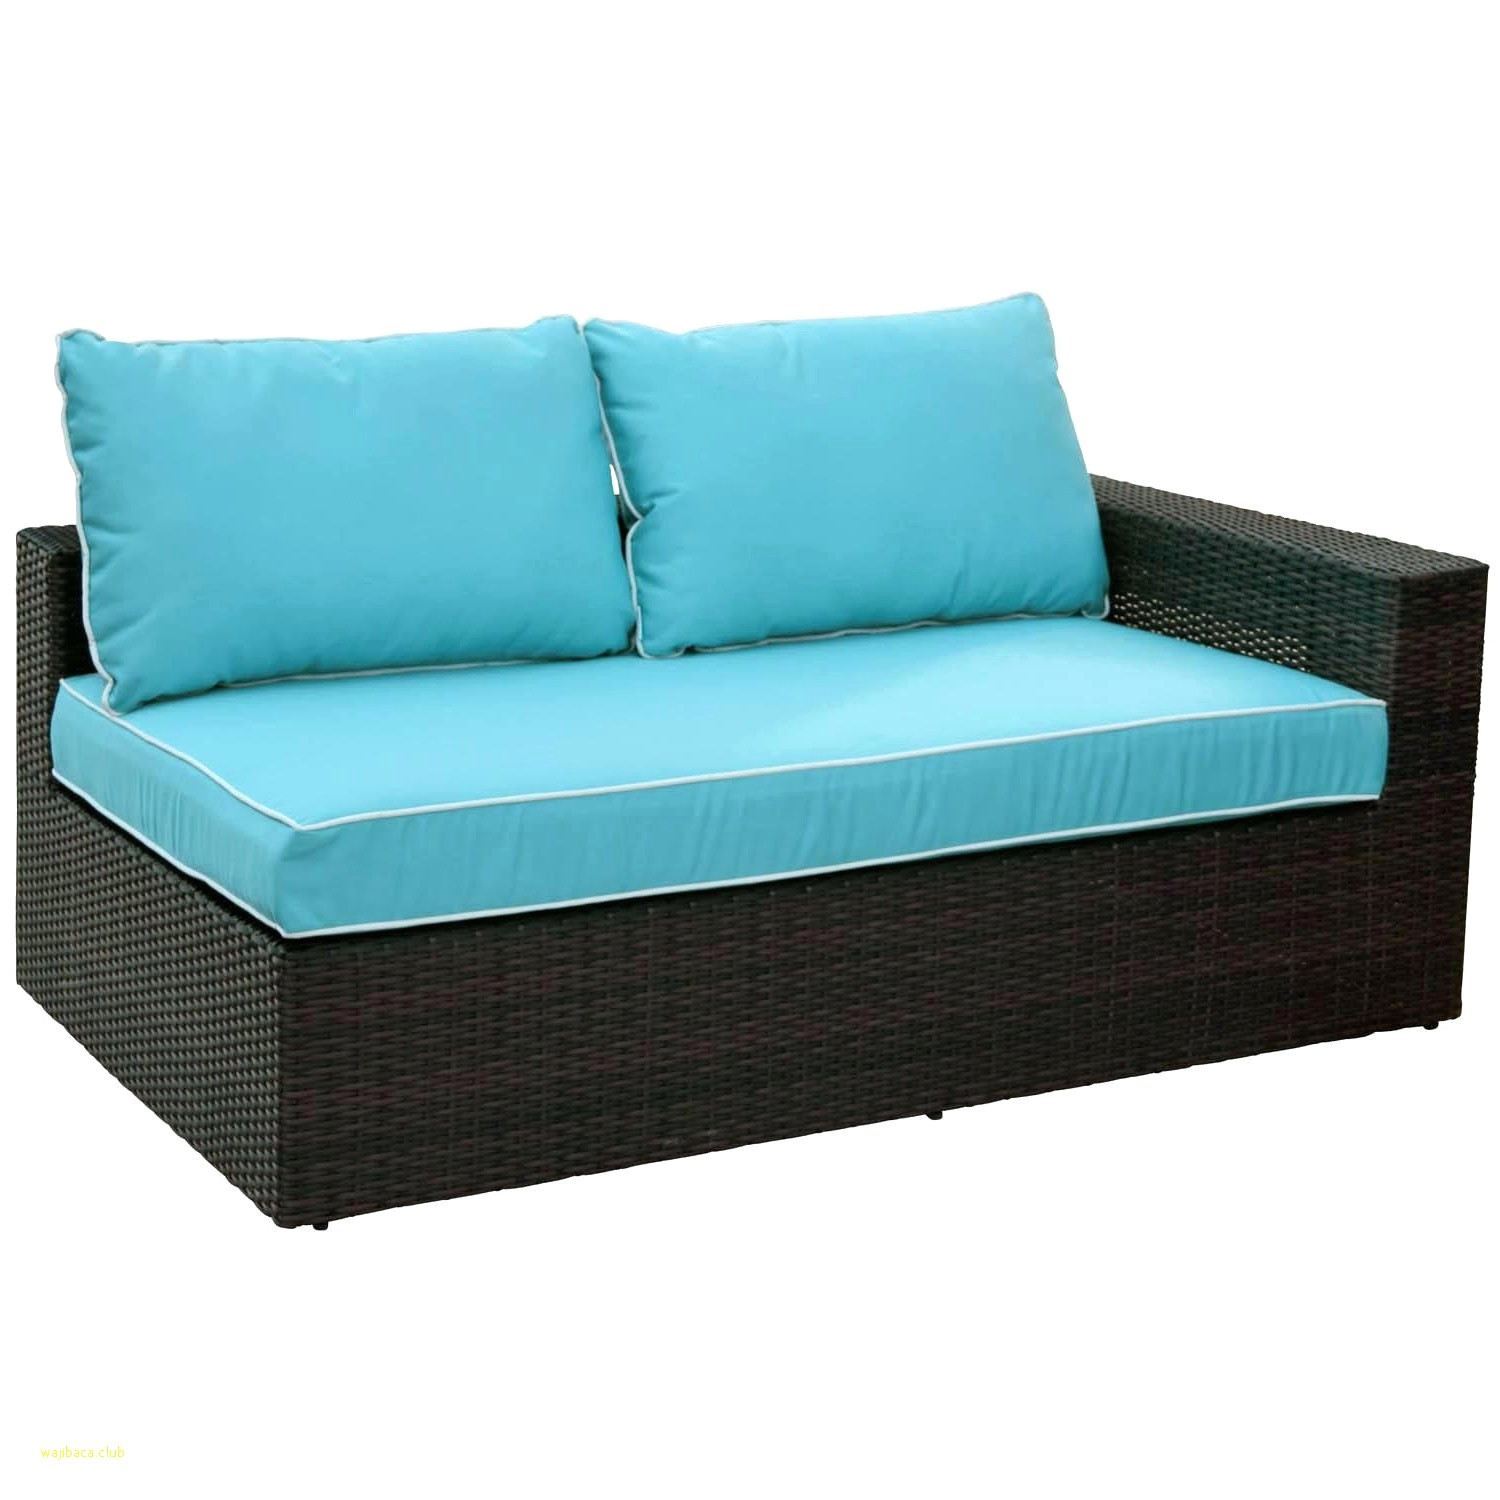 club sofa besten outdoor furniture free wicker outdoor sofa 0d patio chairs sale